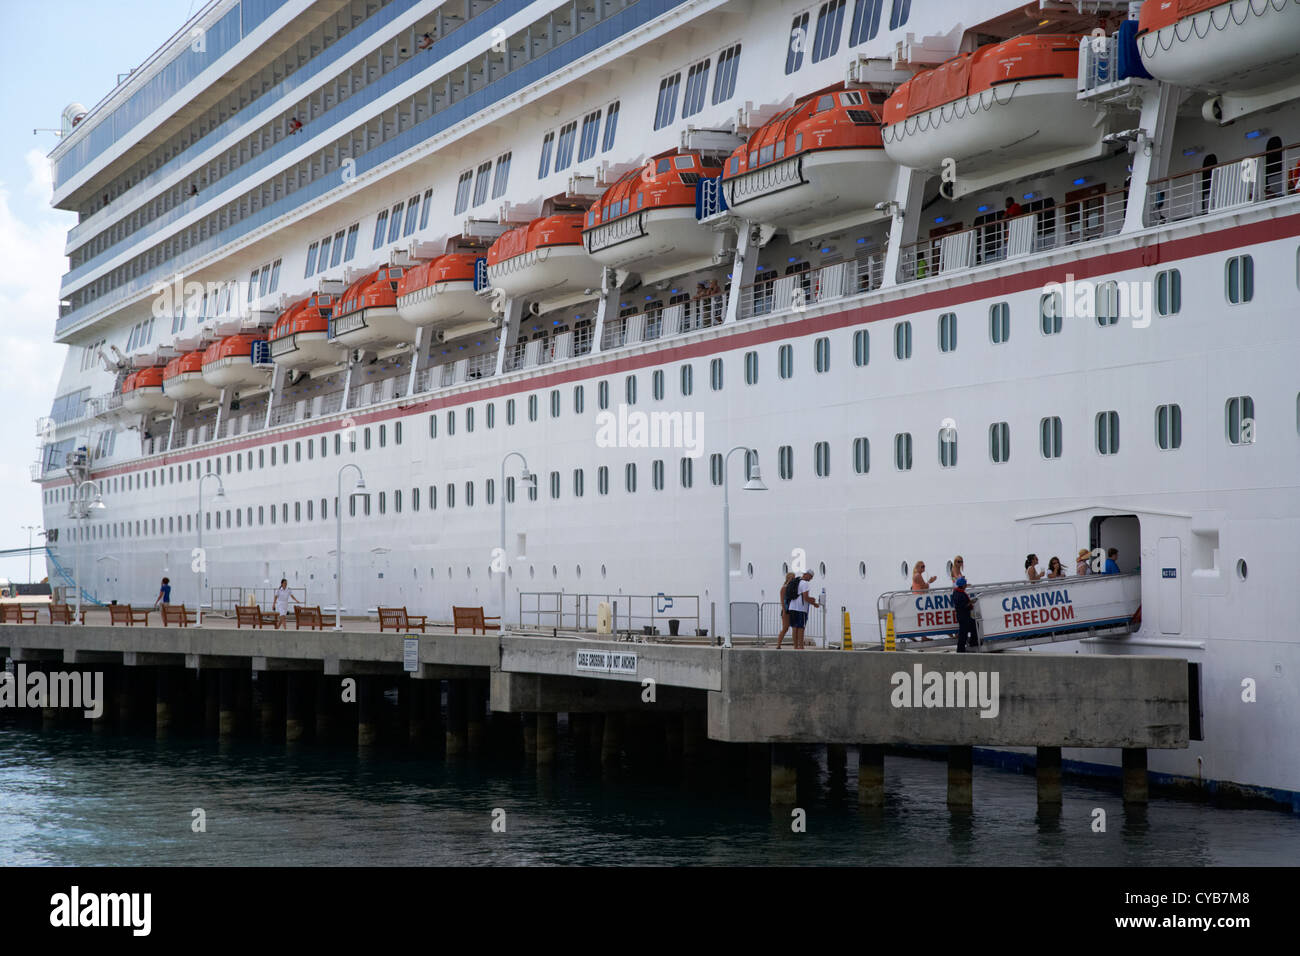 passengers boarding carnival freedom cruise ship moored key west florida usa - Stock Image